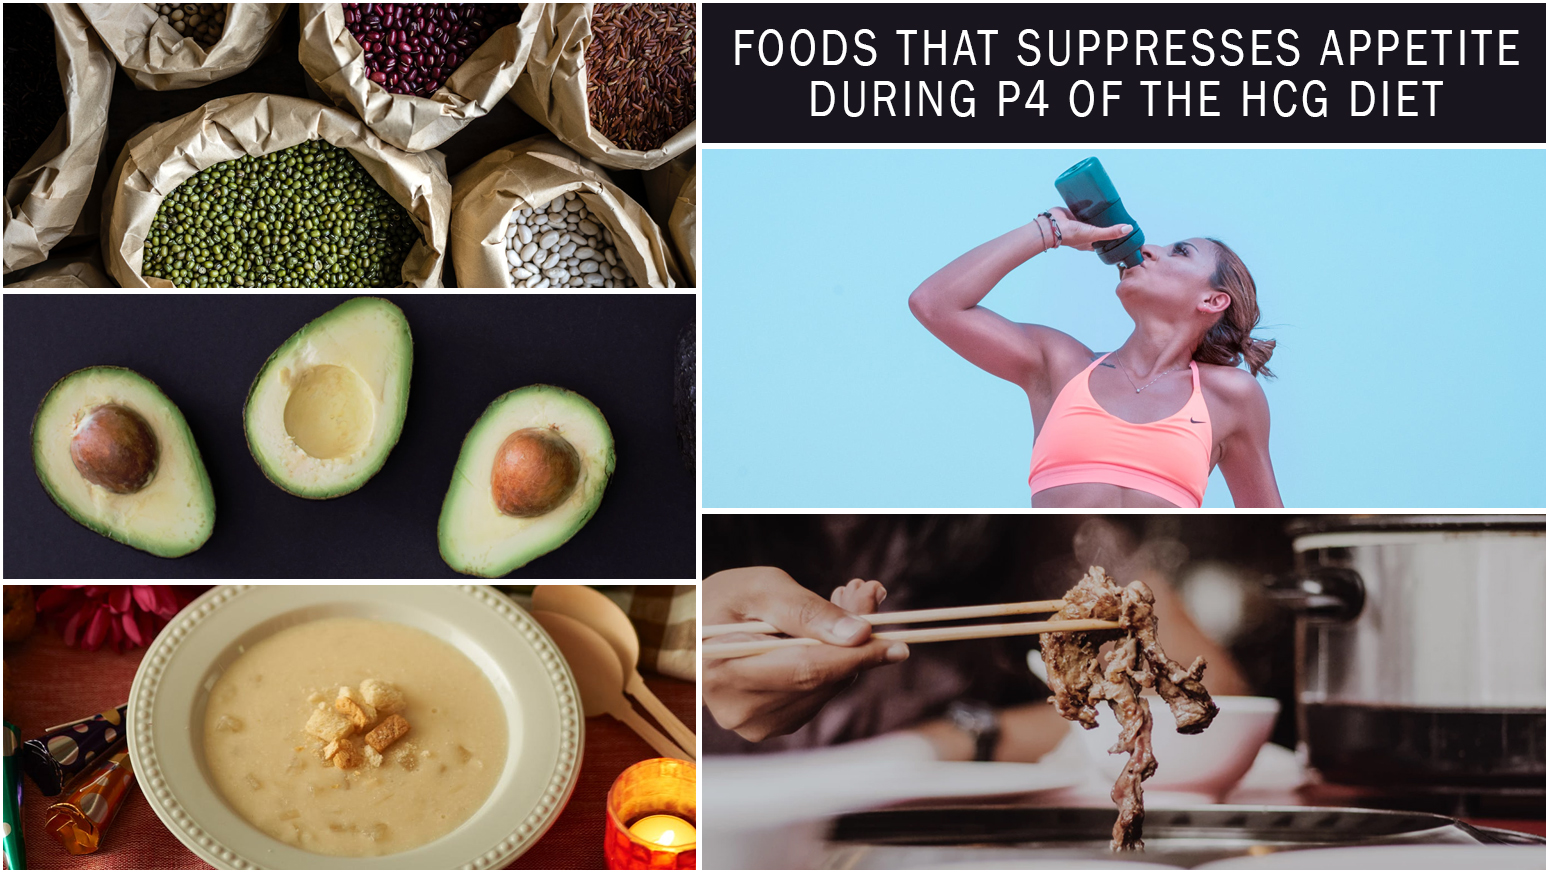 FOODS THAT SUPPRESSES APPETITE DURING P4 OF THE HCG DIET